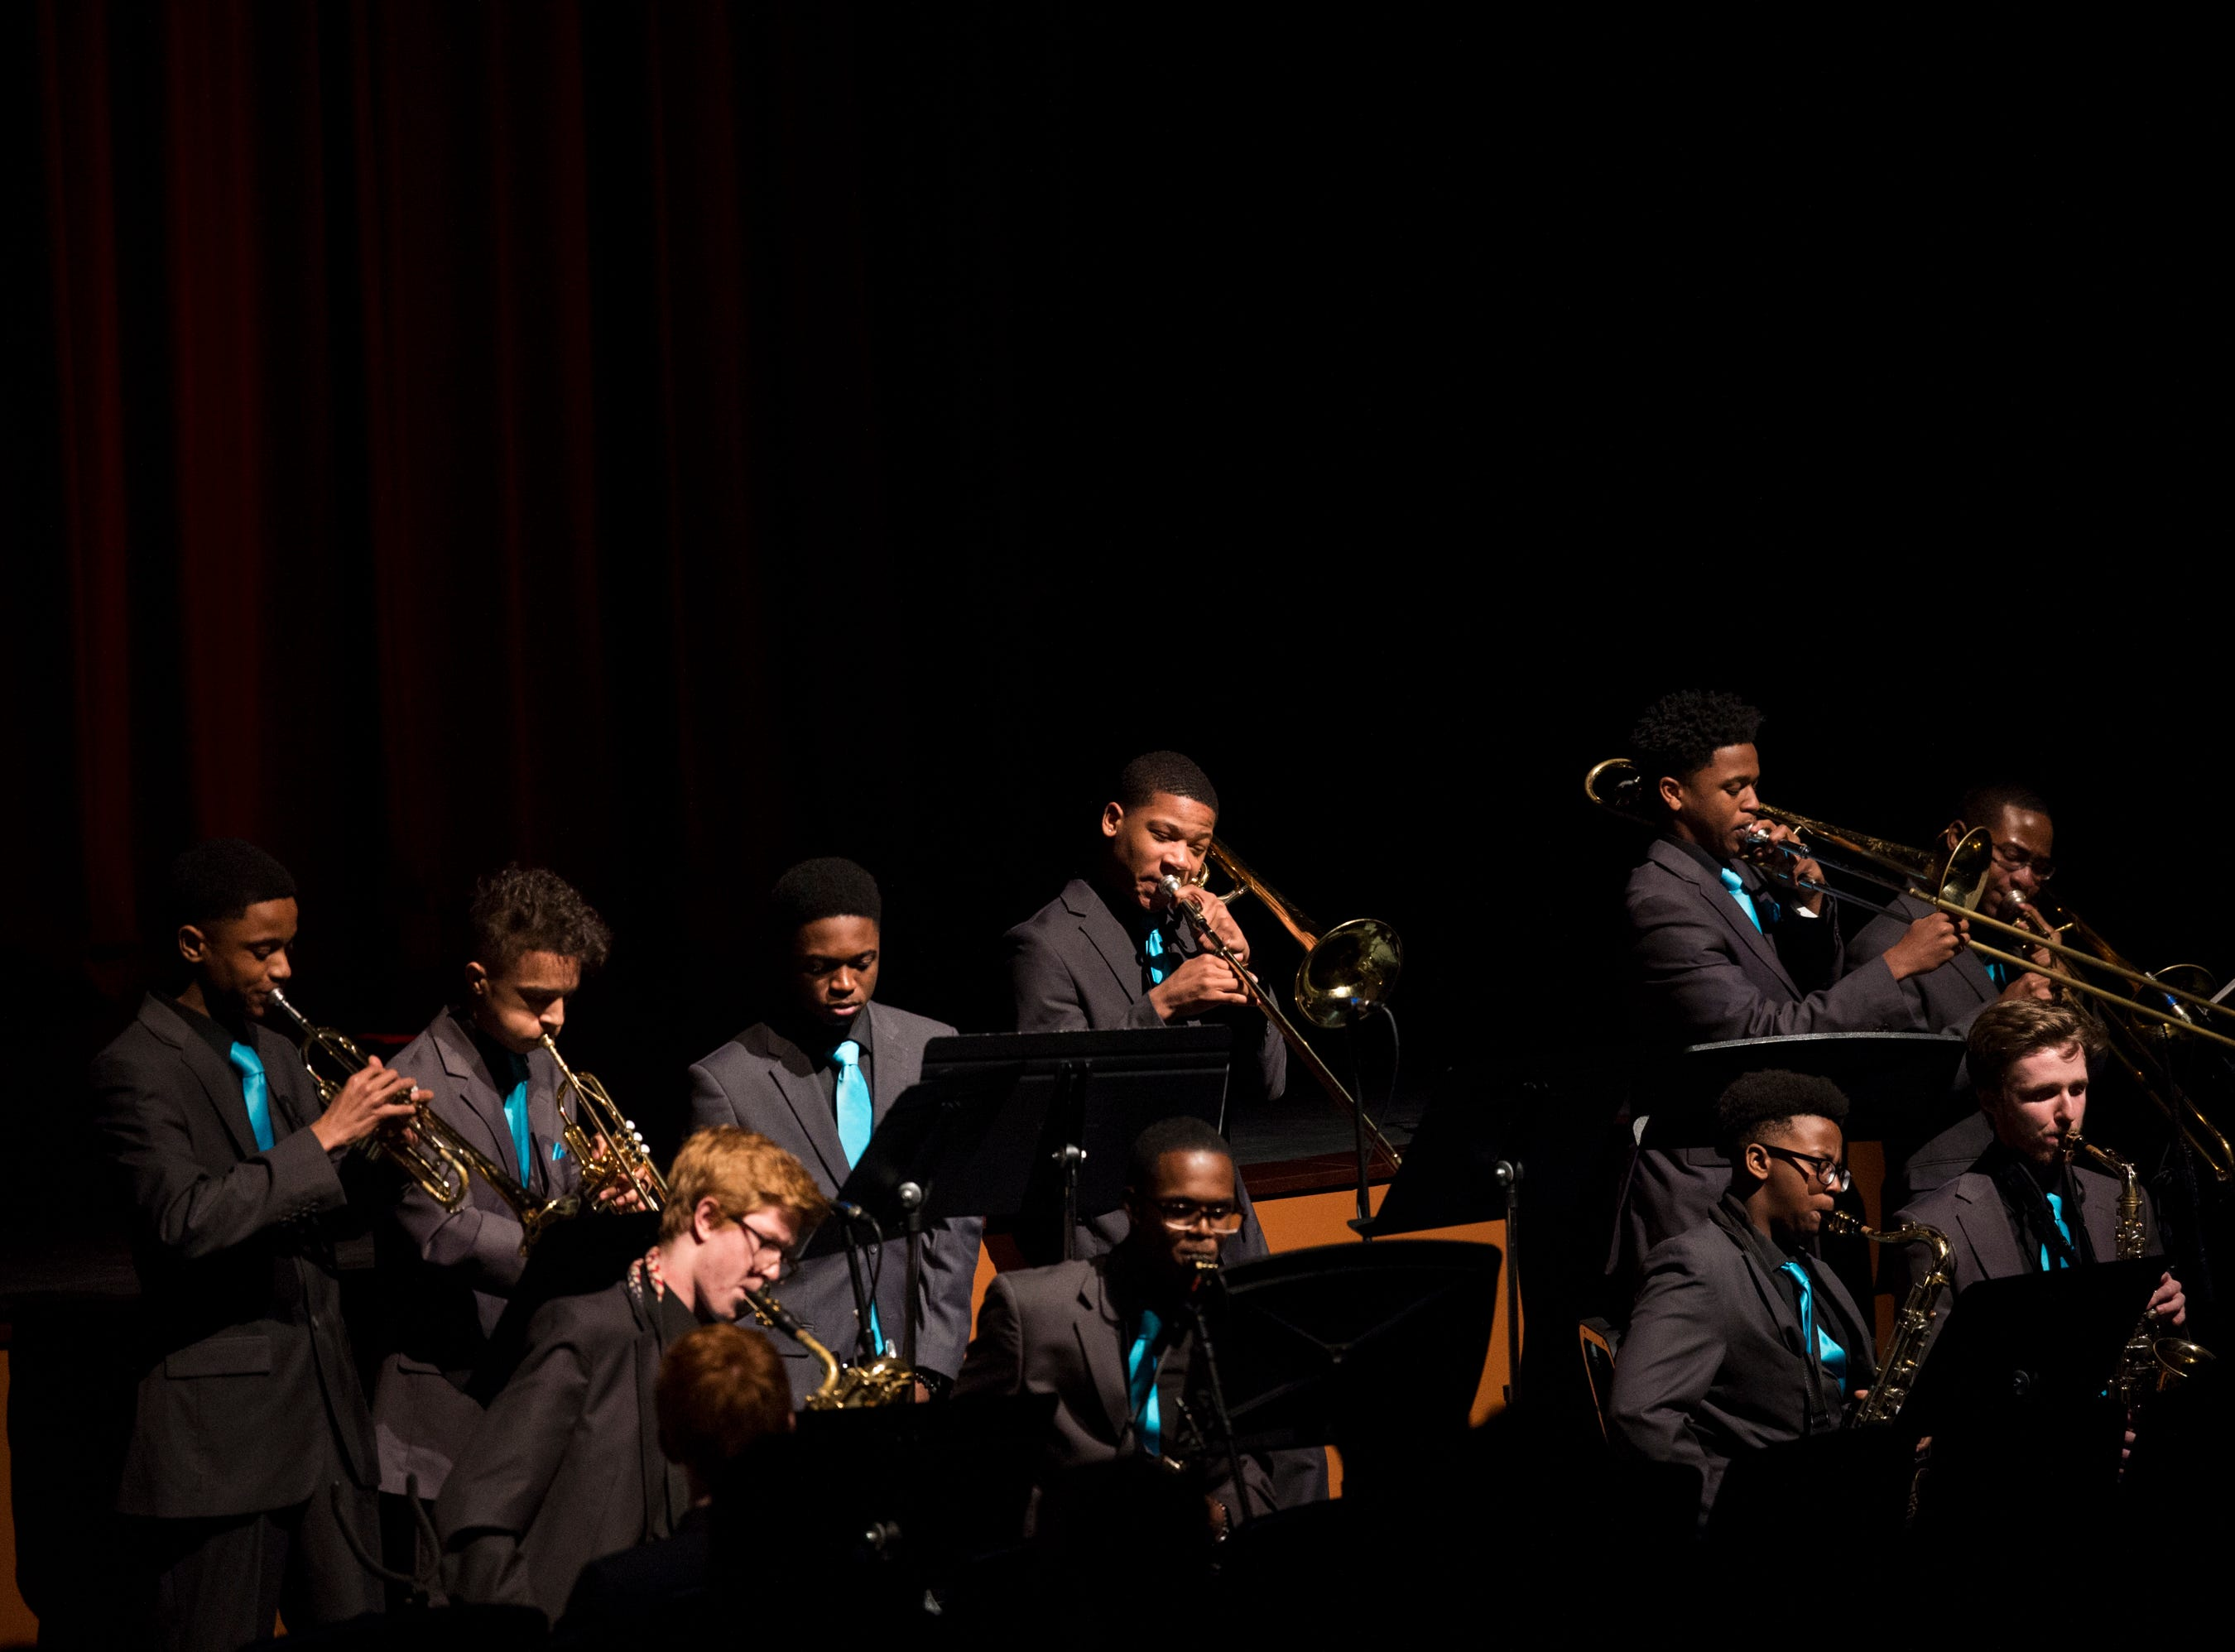 Show band students perform during the BTW Showcase: Rise at the Montgomery Performing Arts Center in Montgomery, Ala., on Friday, Jan. 11, 2019.